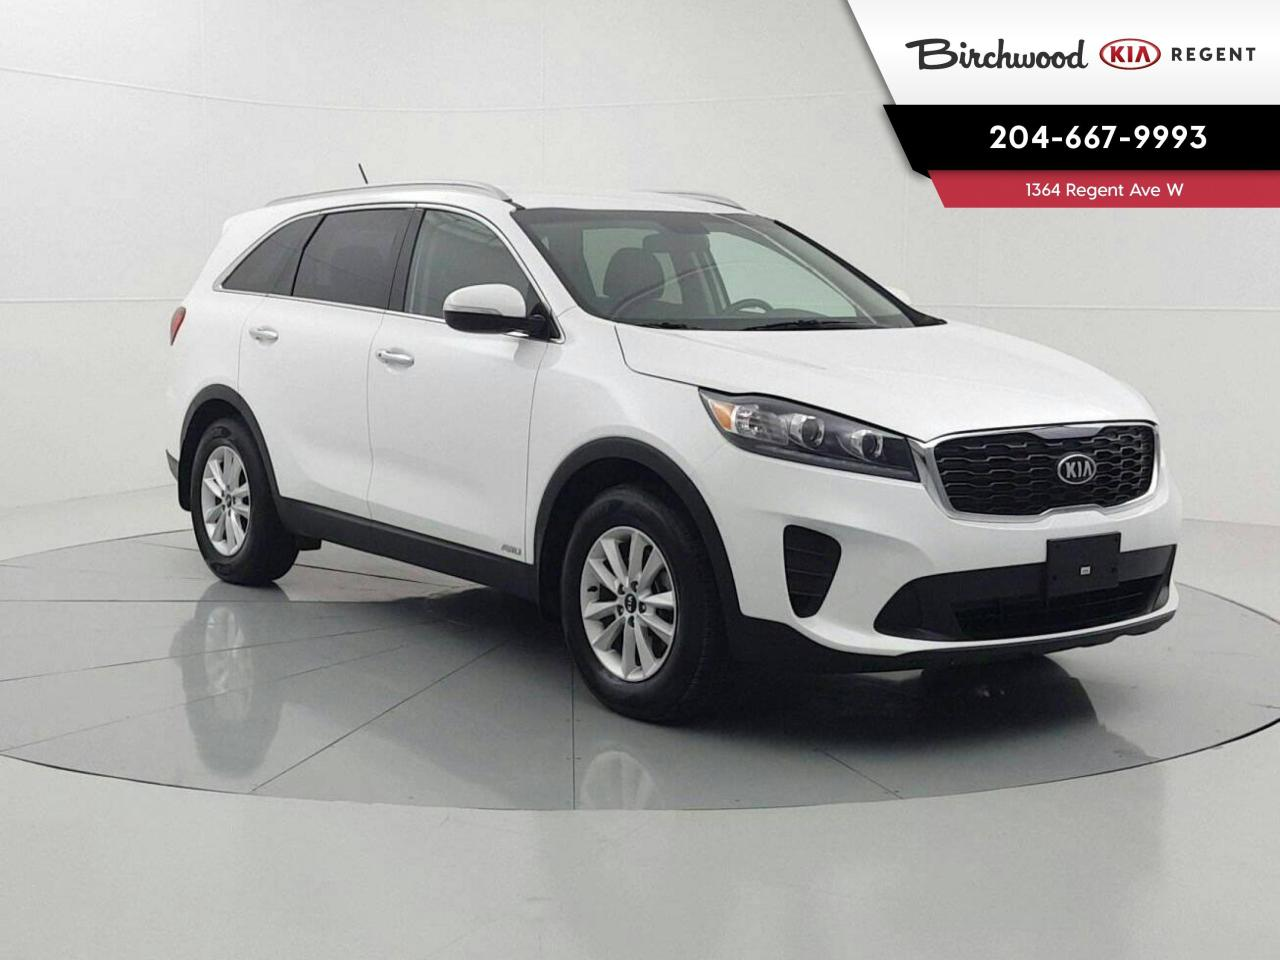 used 2019 kia sorento lx awd android auto apple carplay push button start for sale in winnipeg, manitoba carpages.ca